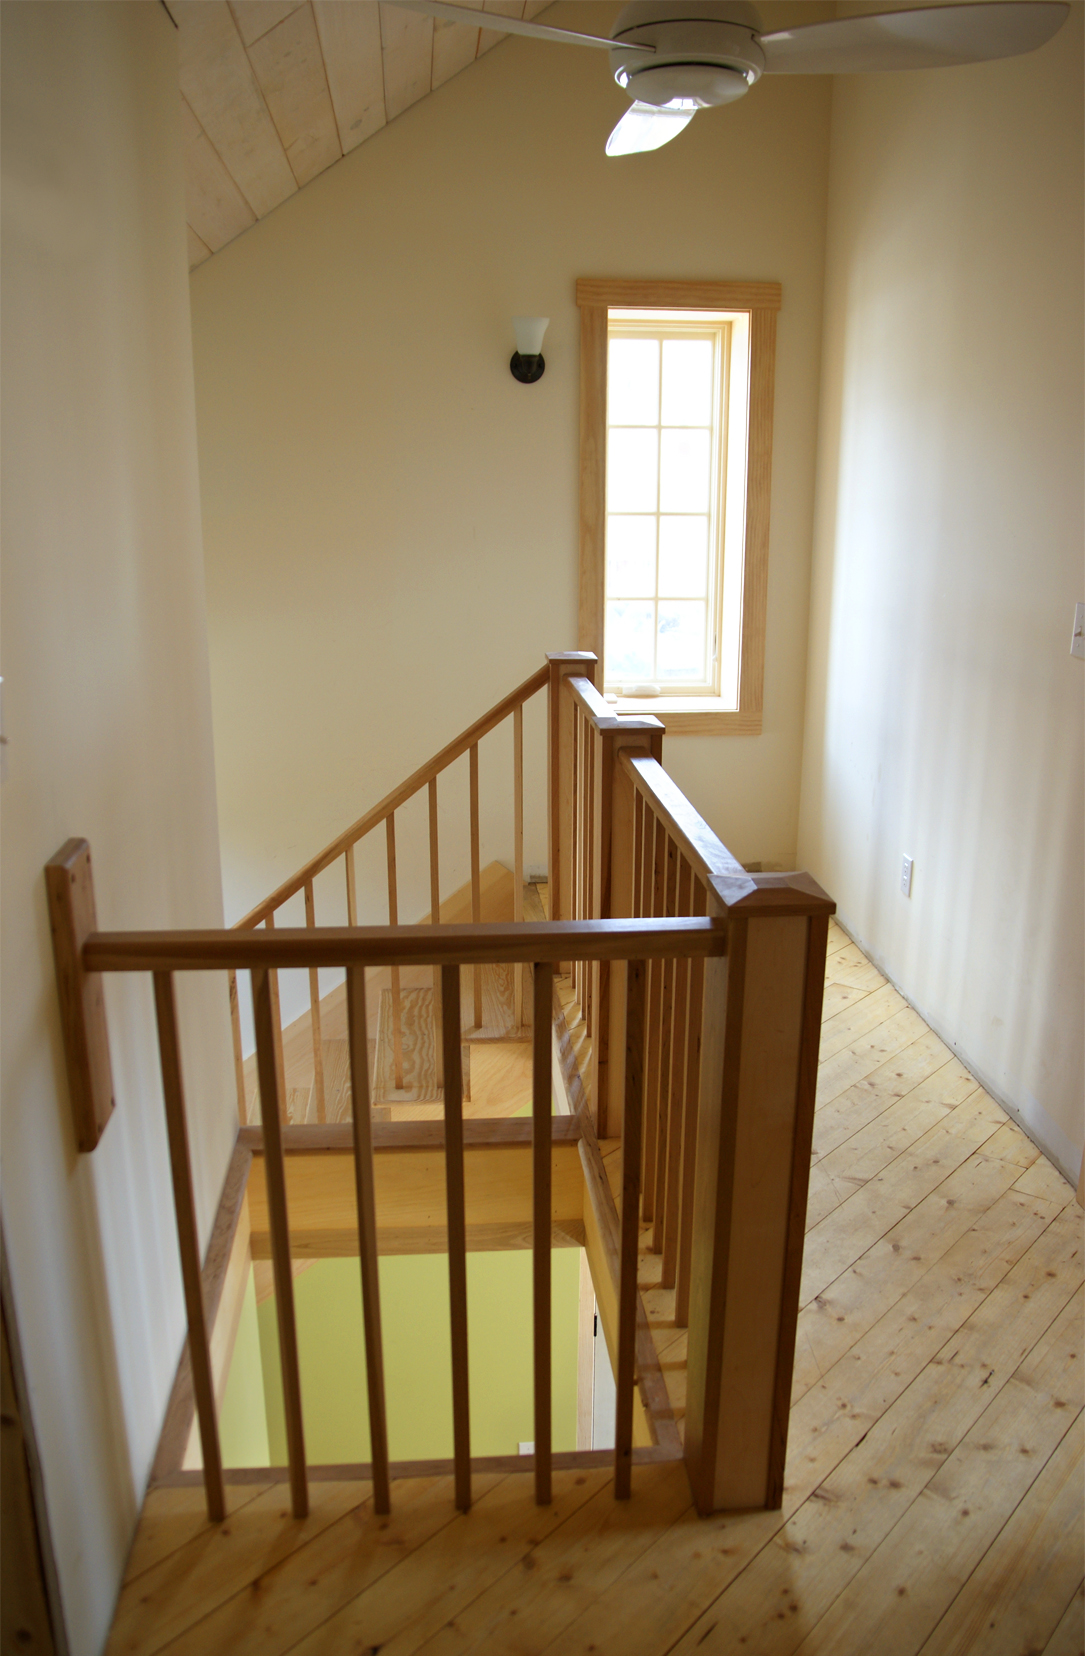 301 moved permanently - Stairs to second floor design ...